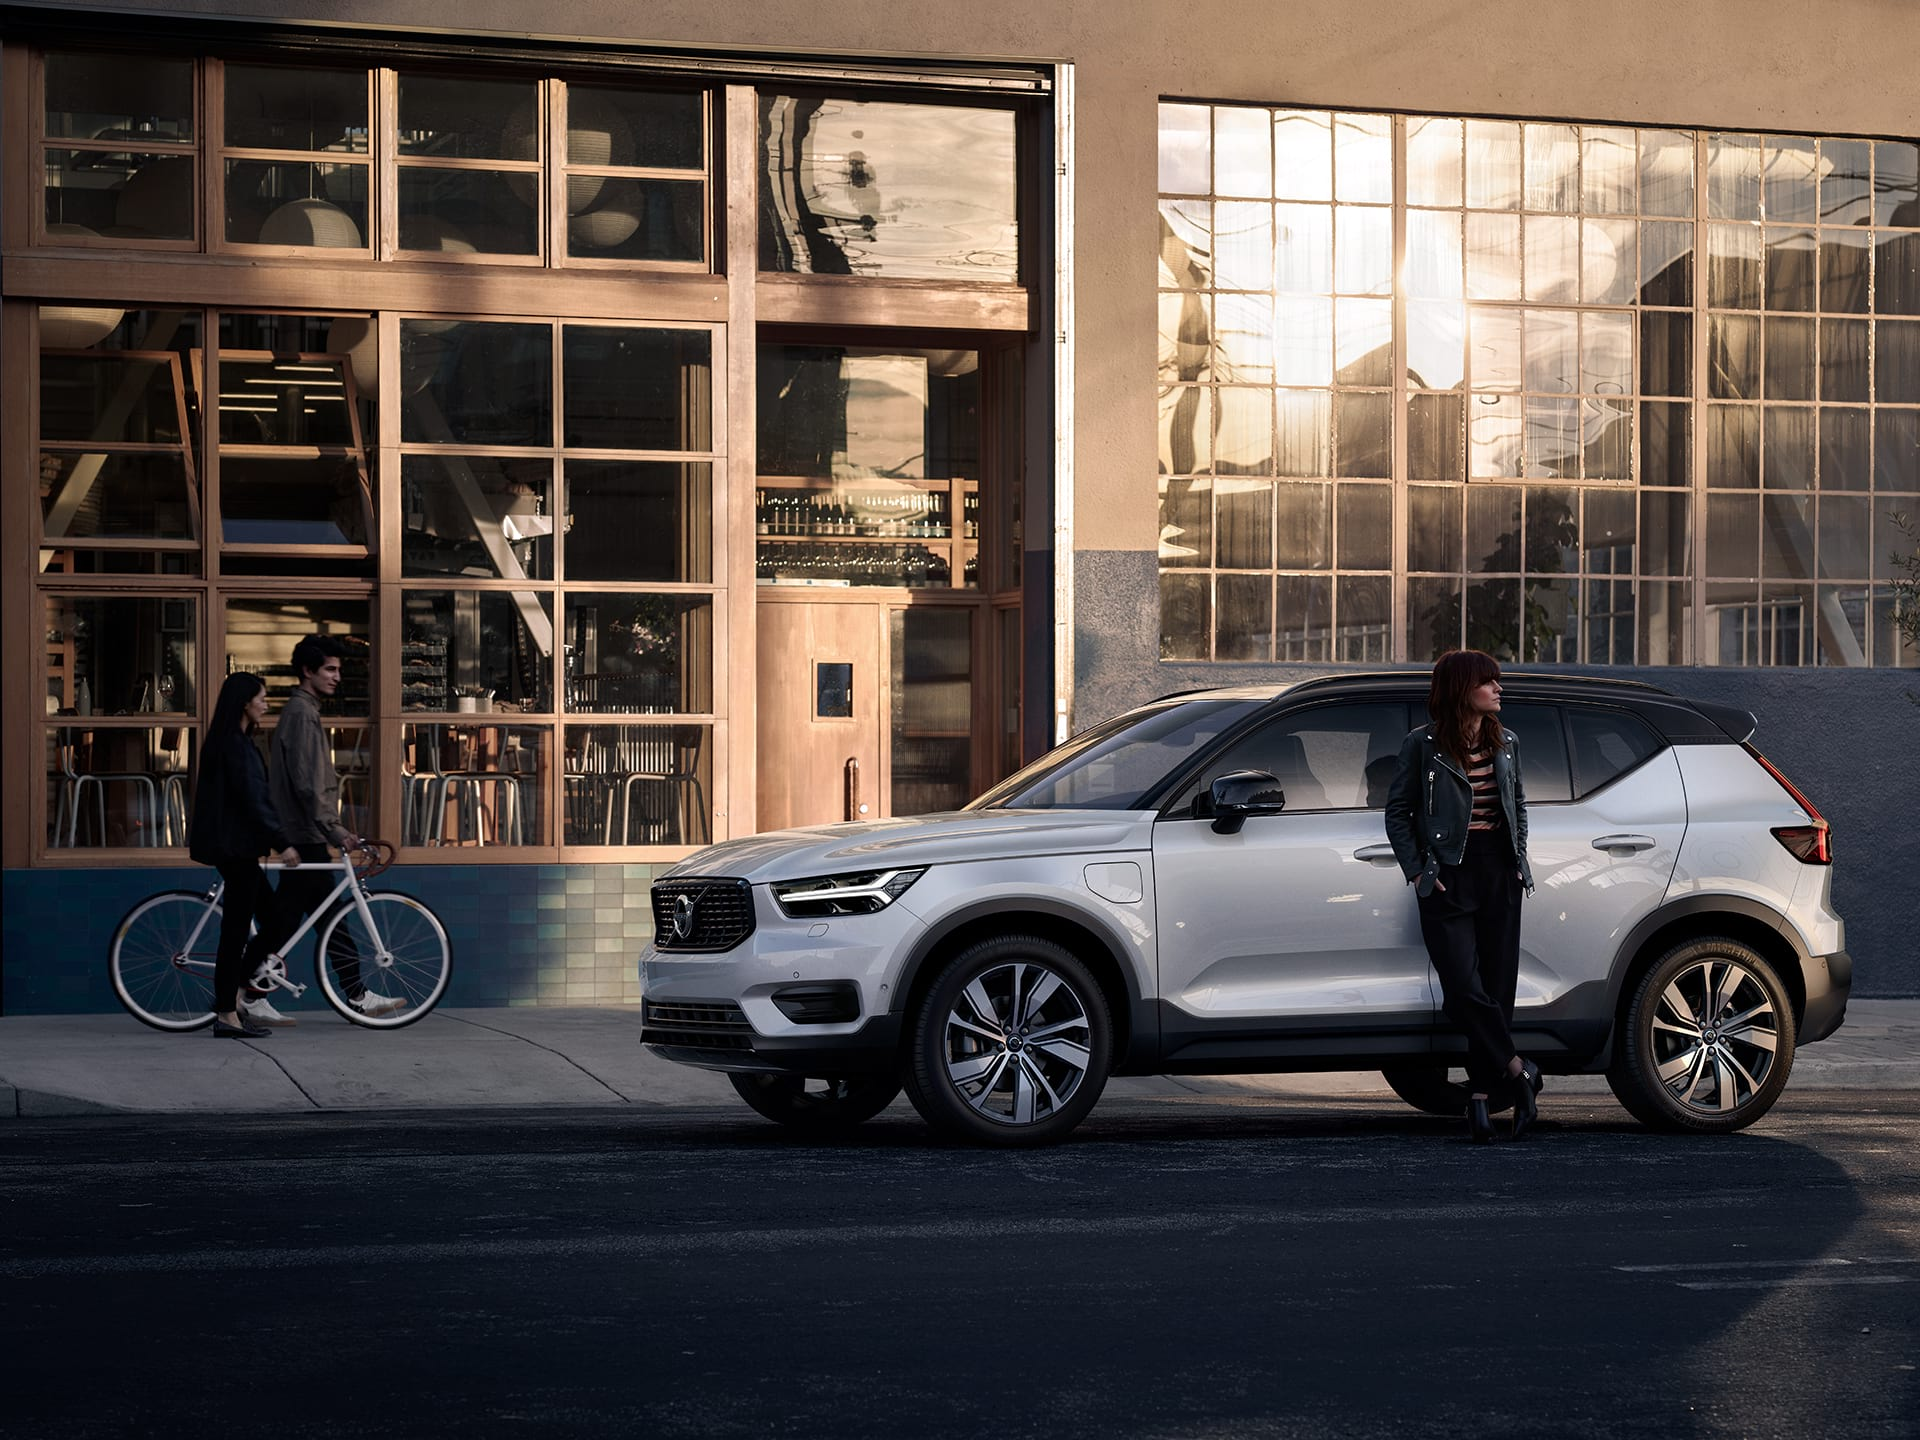 A woman stands leaning against a white XC40 Recharge plug in hybrid, behind her is a restaurant.